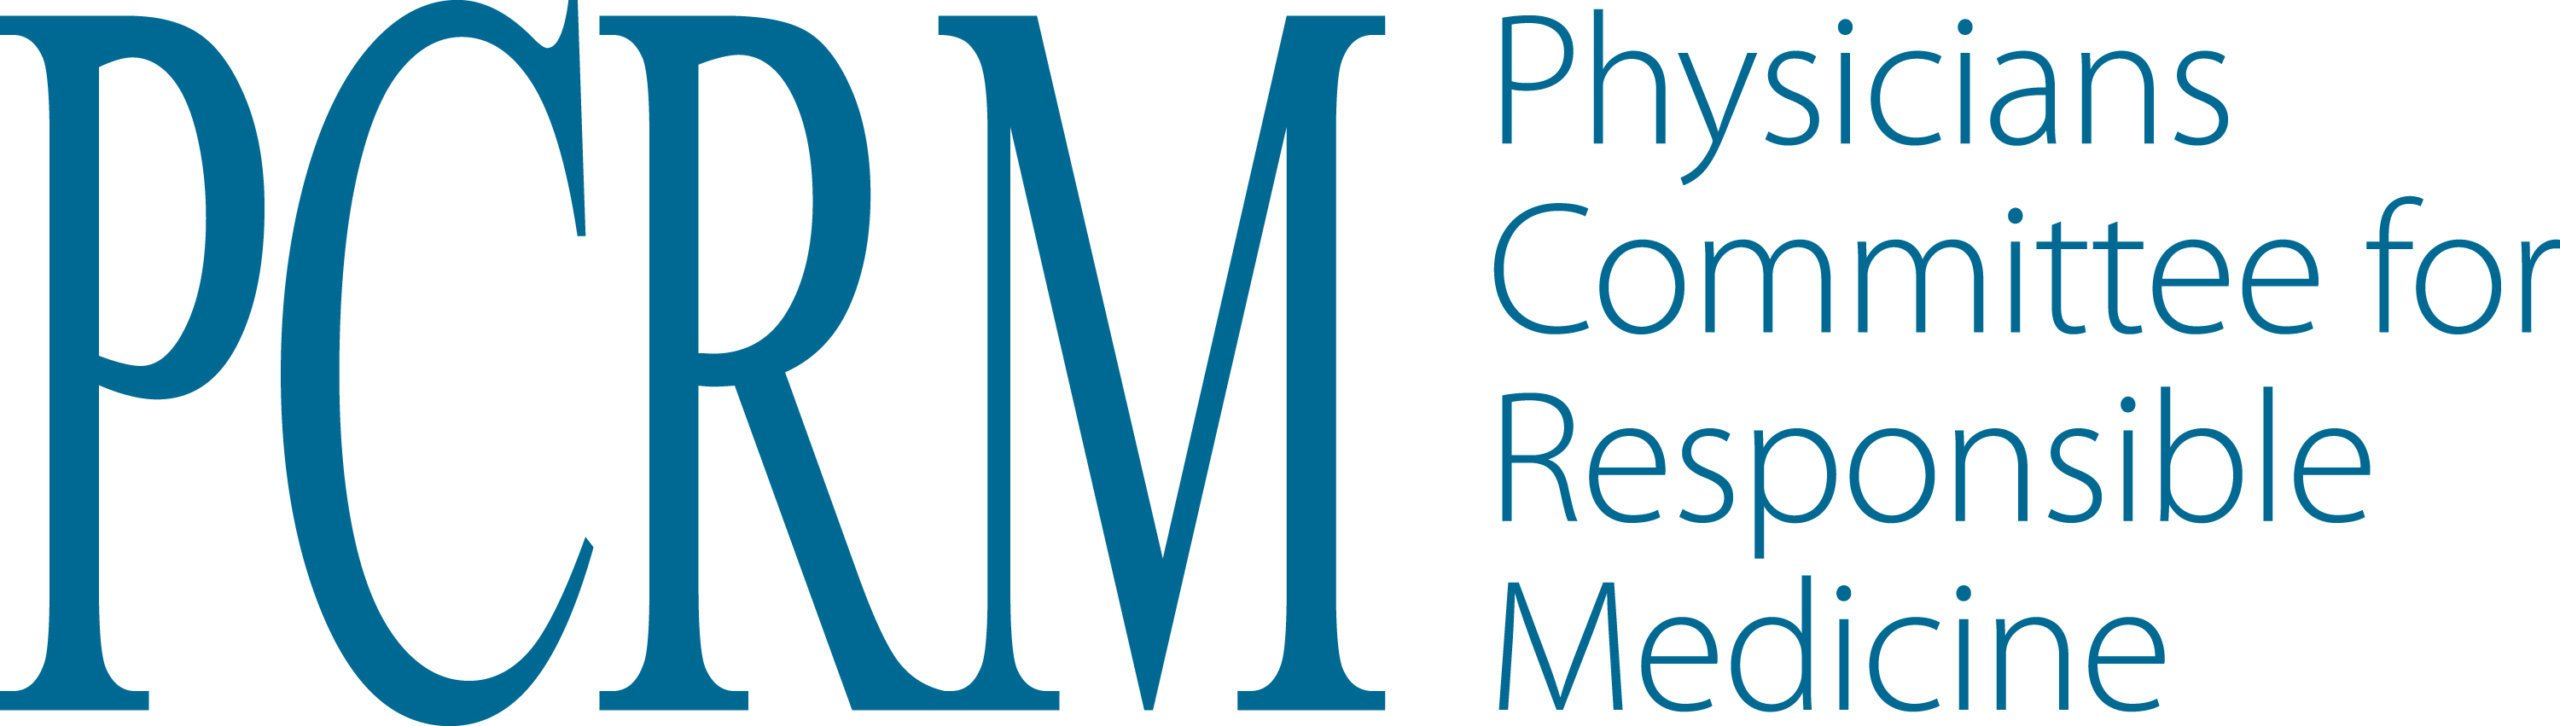 Logo PCRM Physicians Committee for Responsible Medicine